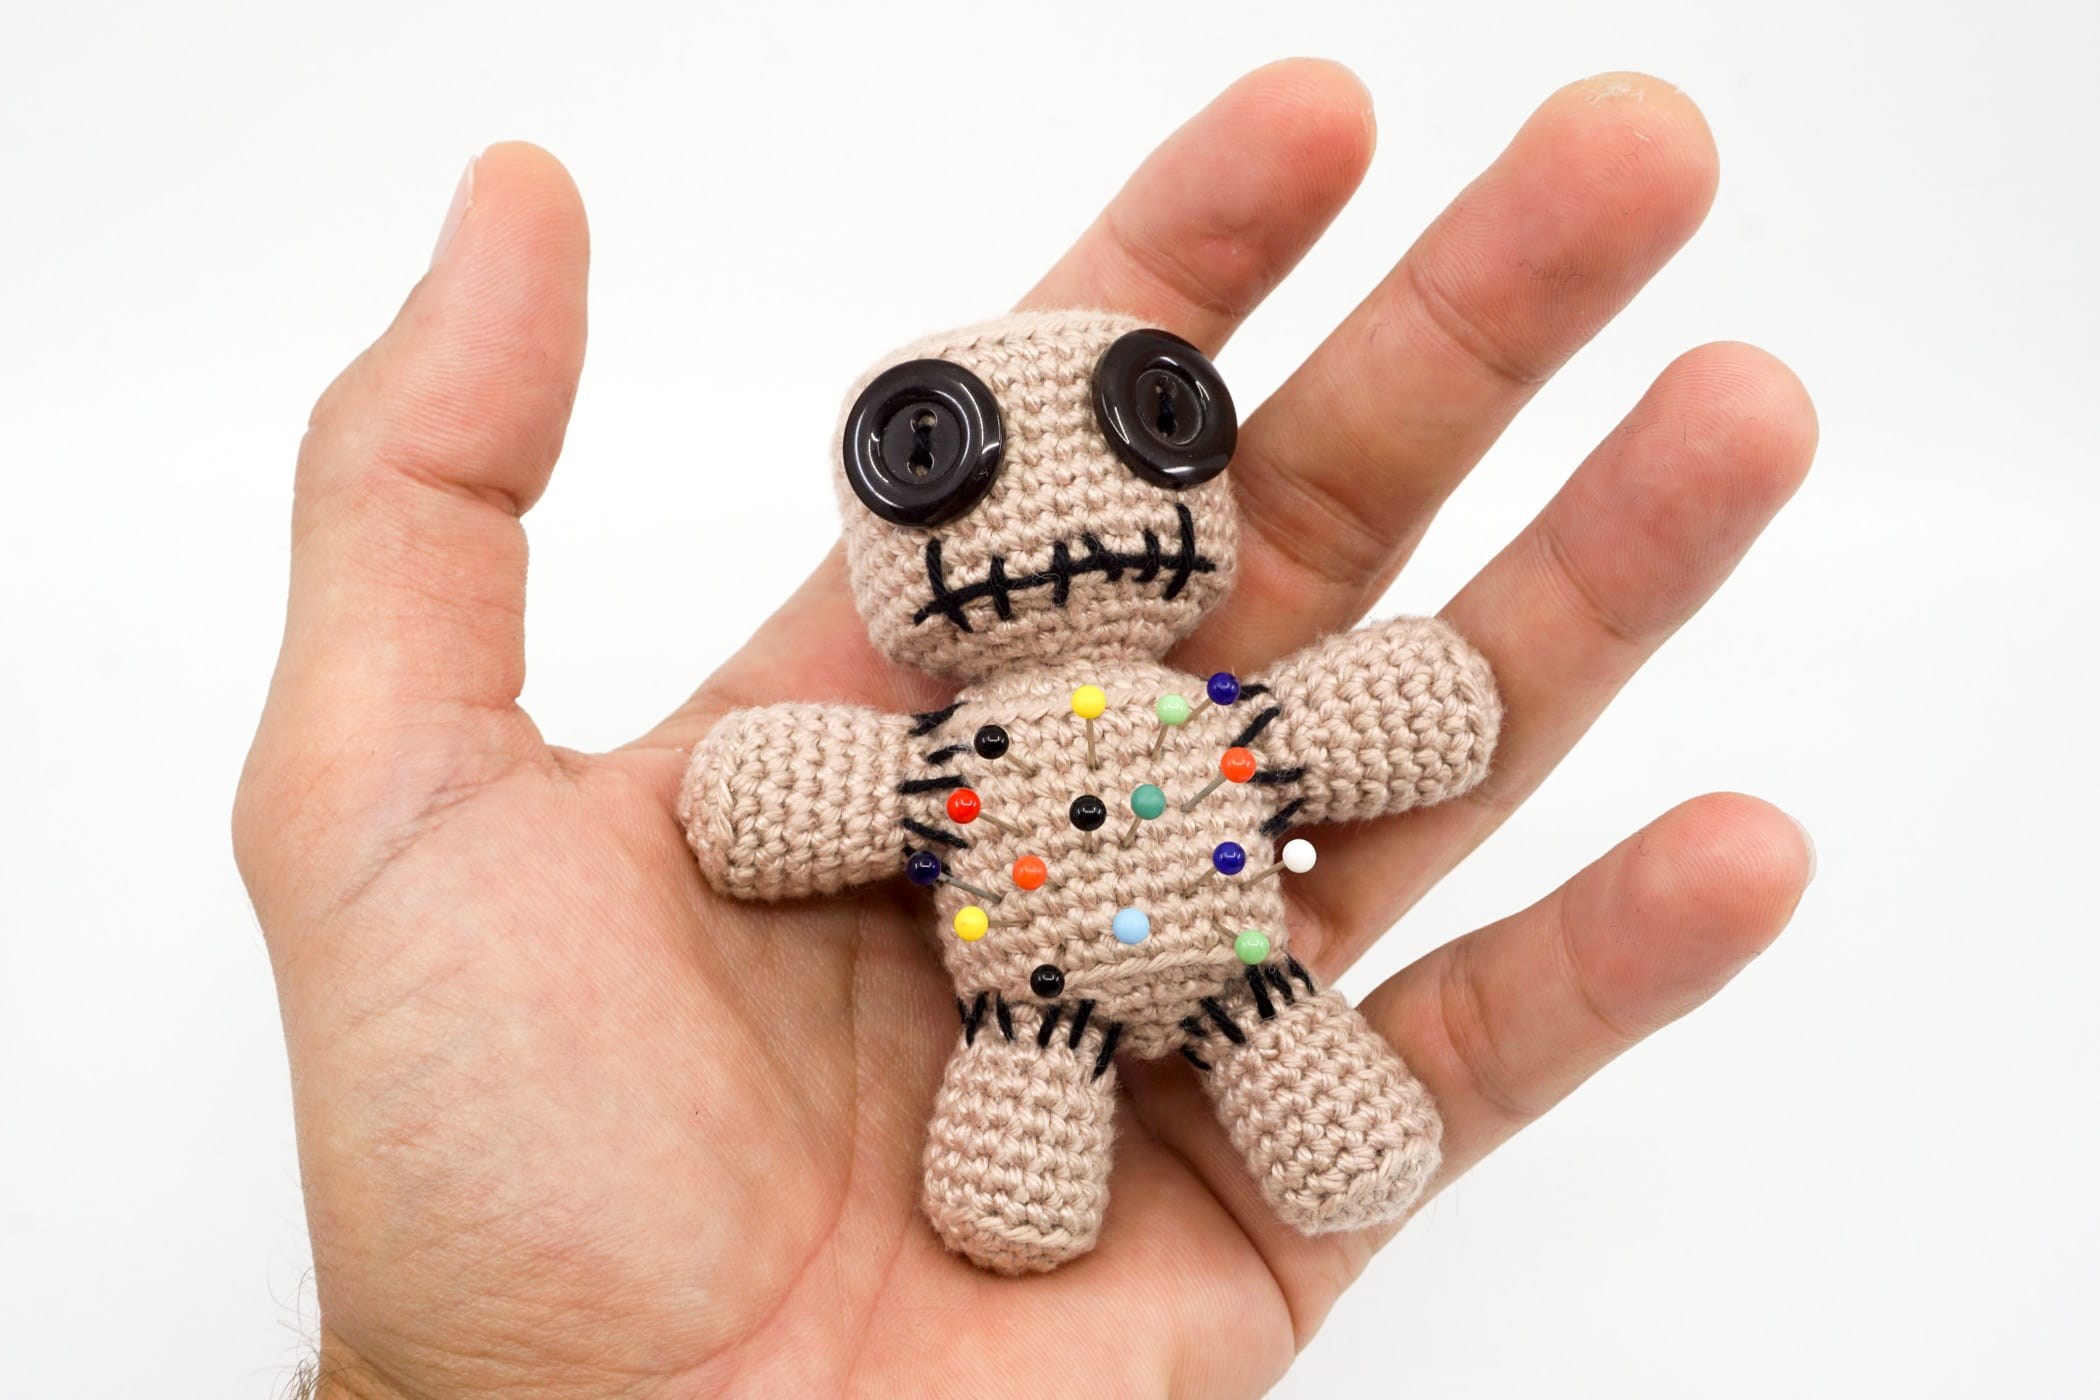 Voodoo Doll Pincushion Crochet Pattern - Supergurumi